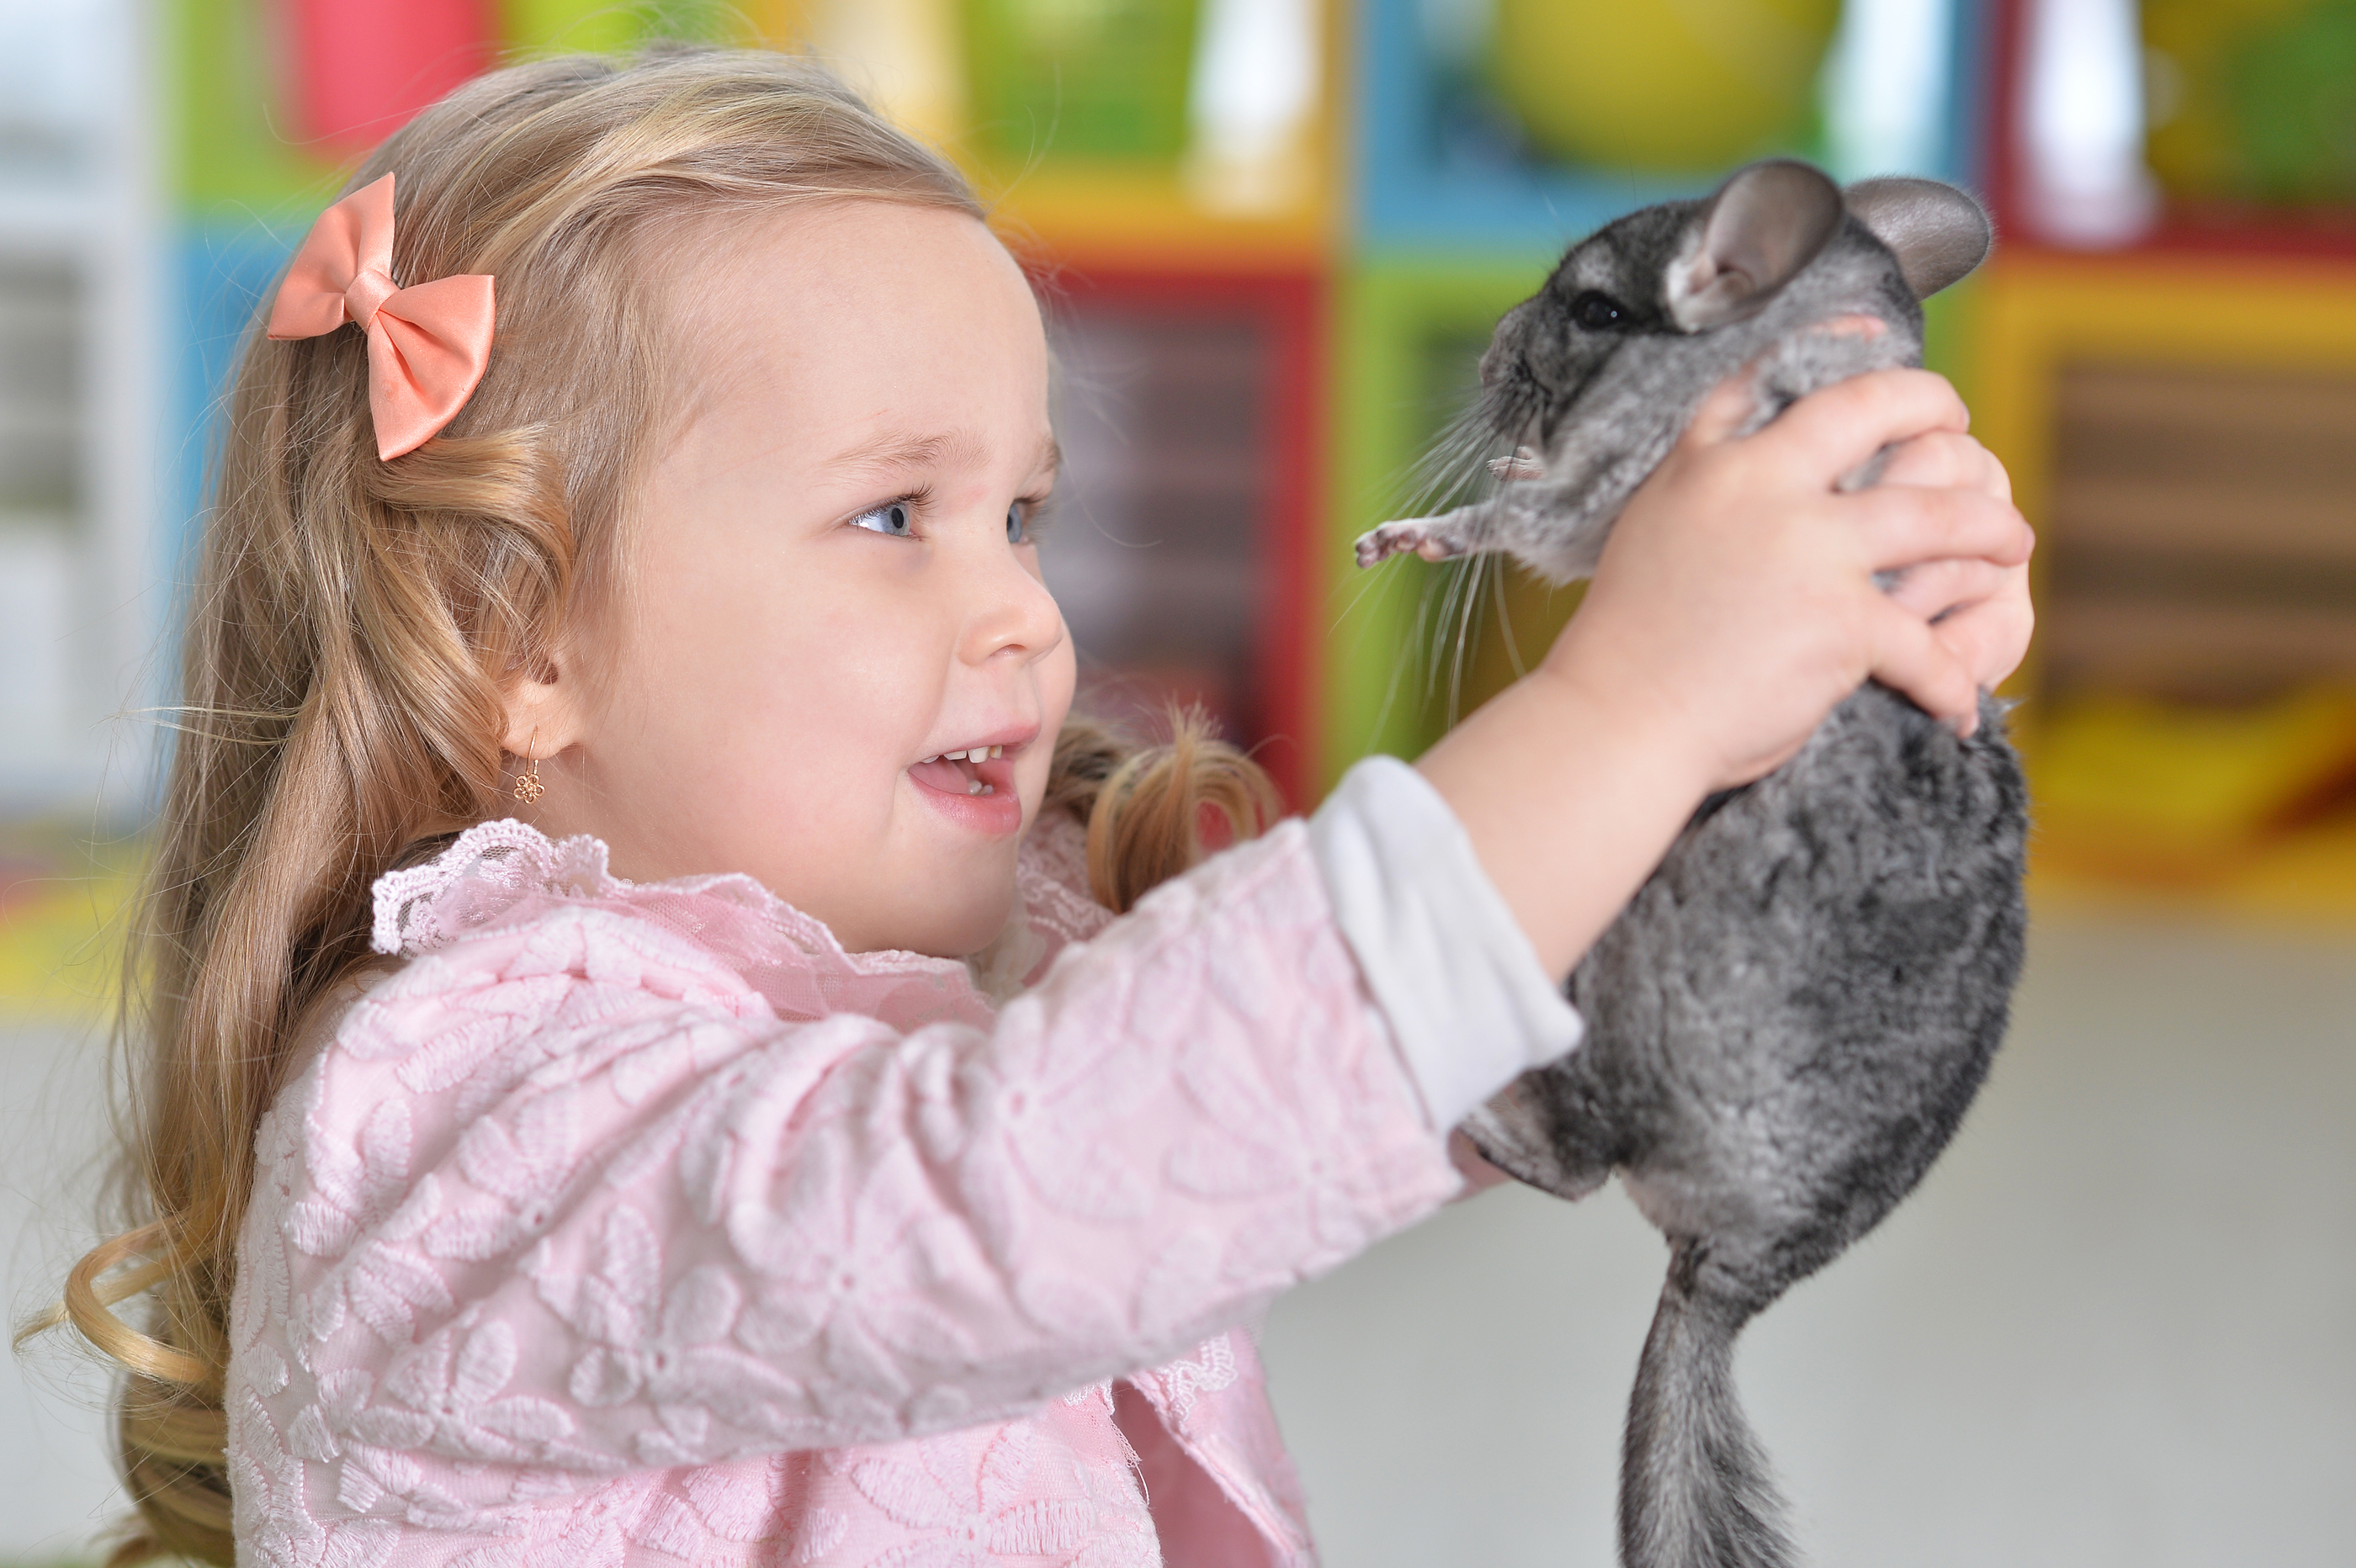 magic show with small animals